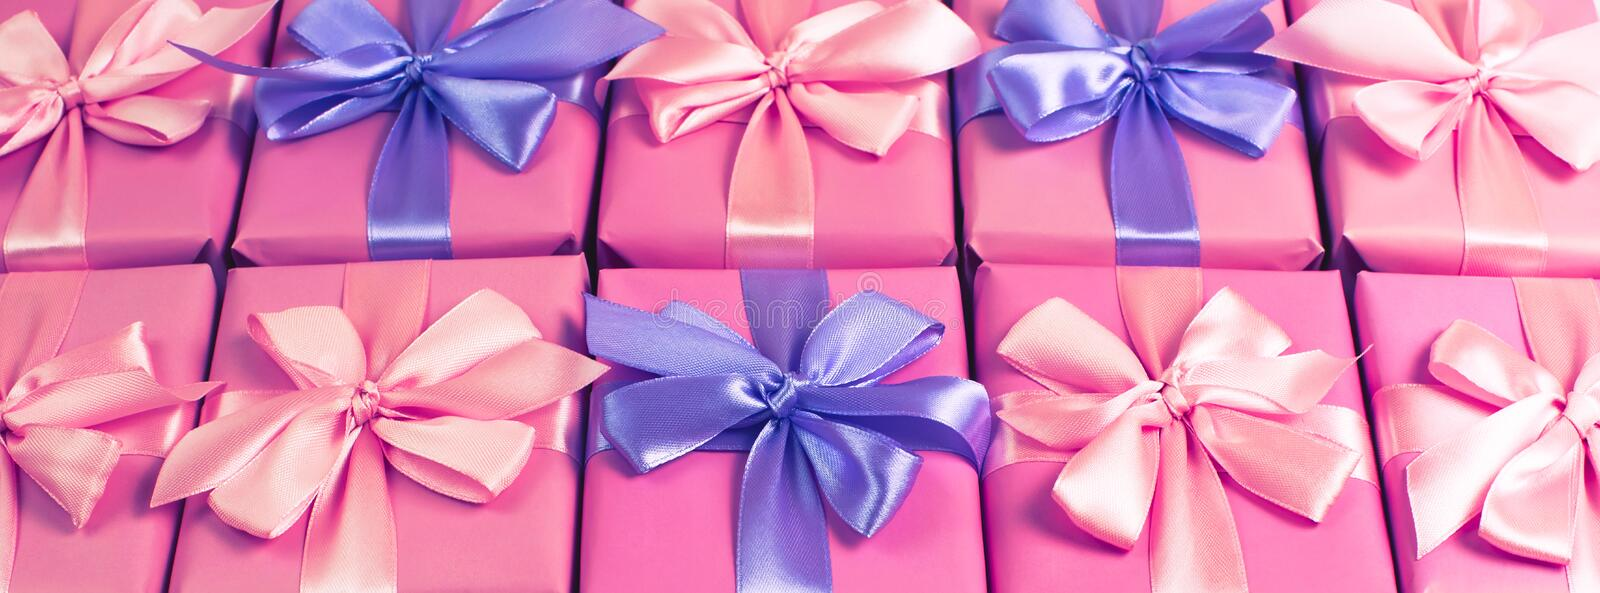 Banner Rows of boxes with gifts decoration ribbon satin bow pink A top view of Flat lay toning stock image